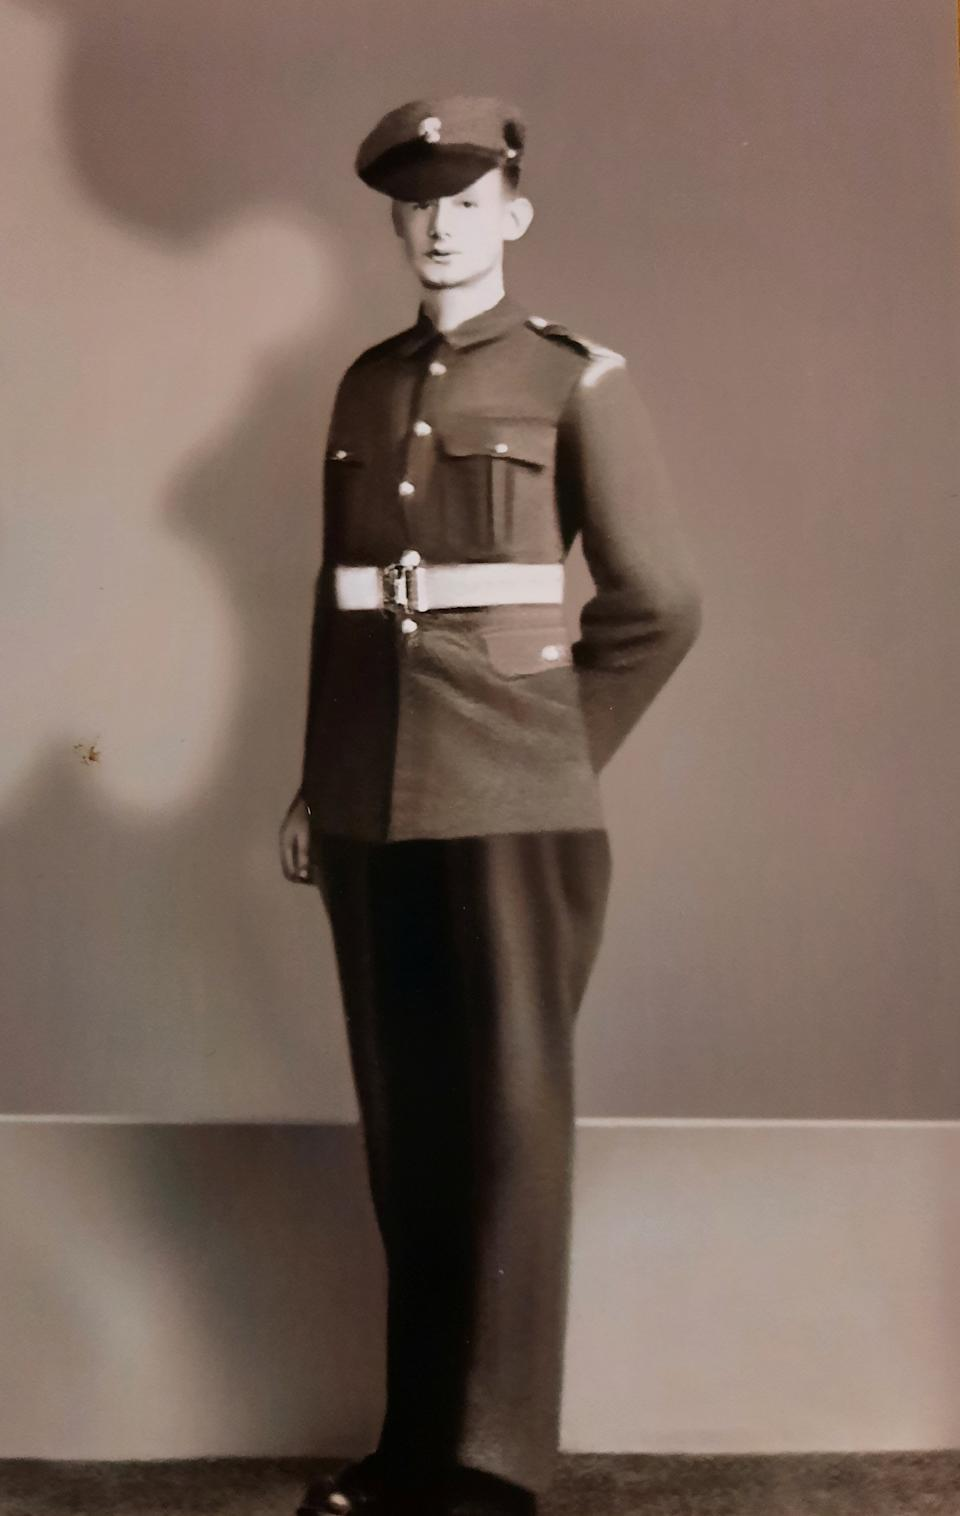 "Ron aged 17 in his Grenadier Guards uniform. See SWNS story SWLEcouple; A husband and wife who met in their teens have become one of Britain's longest married couples after they celebrated their 80th wedding anniversary. Ron Golightly met his beloved Beryl when he was just 16 when one of his pals wolf-whistled at his future wife's friends as they walked past the group in the street. A 14-year-old Beryl turned round to see what was going on and instantly fell in love with Ron's curly hair and cheeky smile and the pair have been inseparable ever since. Beryl, now 98, said of Ron, now 100: ""I just knew as soon as I saw him I was going to marry him. ""I was 14 and Ron was 16, it was very much love at first sight. ""A couple of days later we spoke again and went for a walk, we were more or less a couple straight away. ""I thought he had whistled at me and I just fell in love with his cheeky grin straight away."" The couple tied the knot in their hometown of Harrogate, North Yorks., in 1941 while Ron, who served in the Brigadier Guards, was on leave from the Army during World War II."